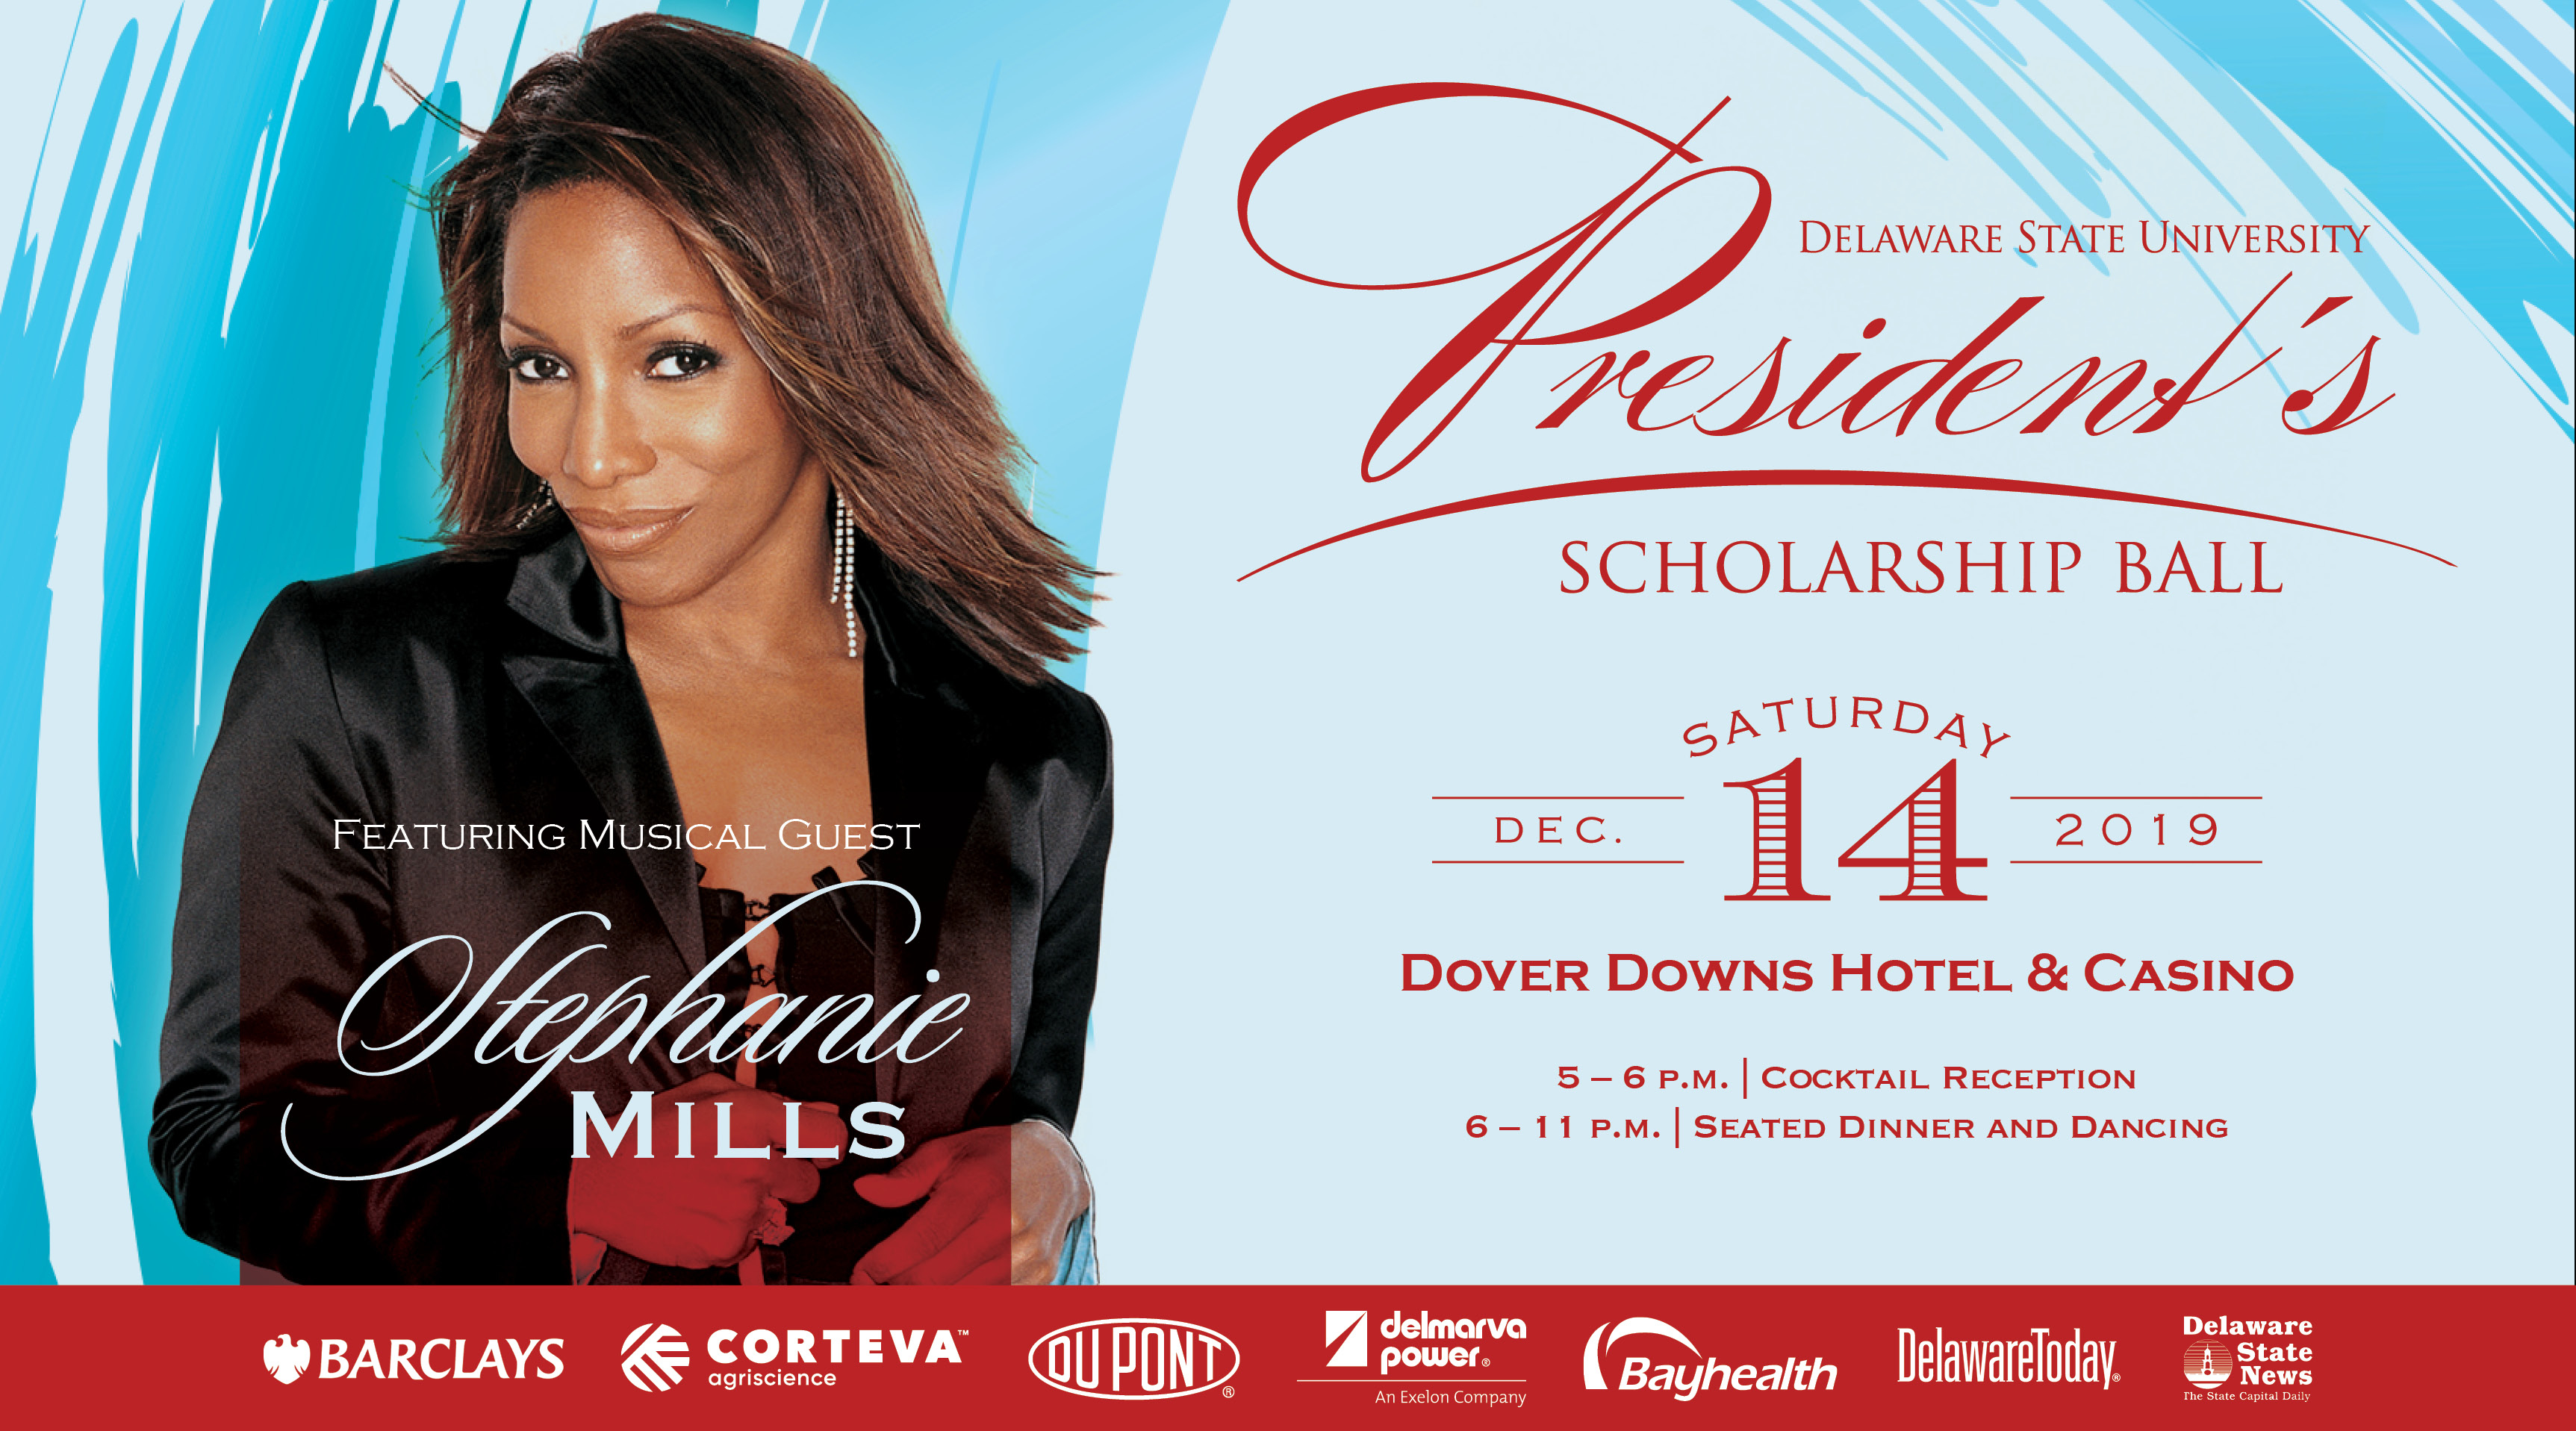 President's Scholarship Ball   Delaware State University Regarding Delaware State University Holiday Schedule